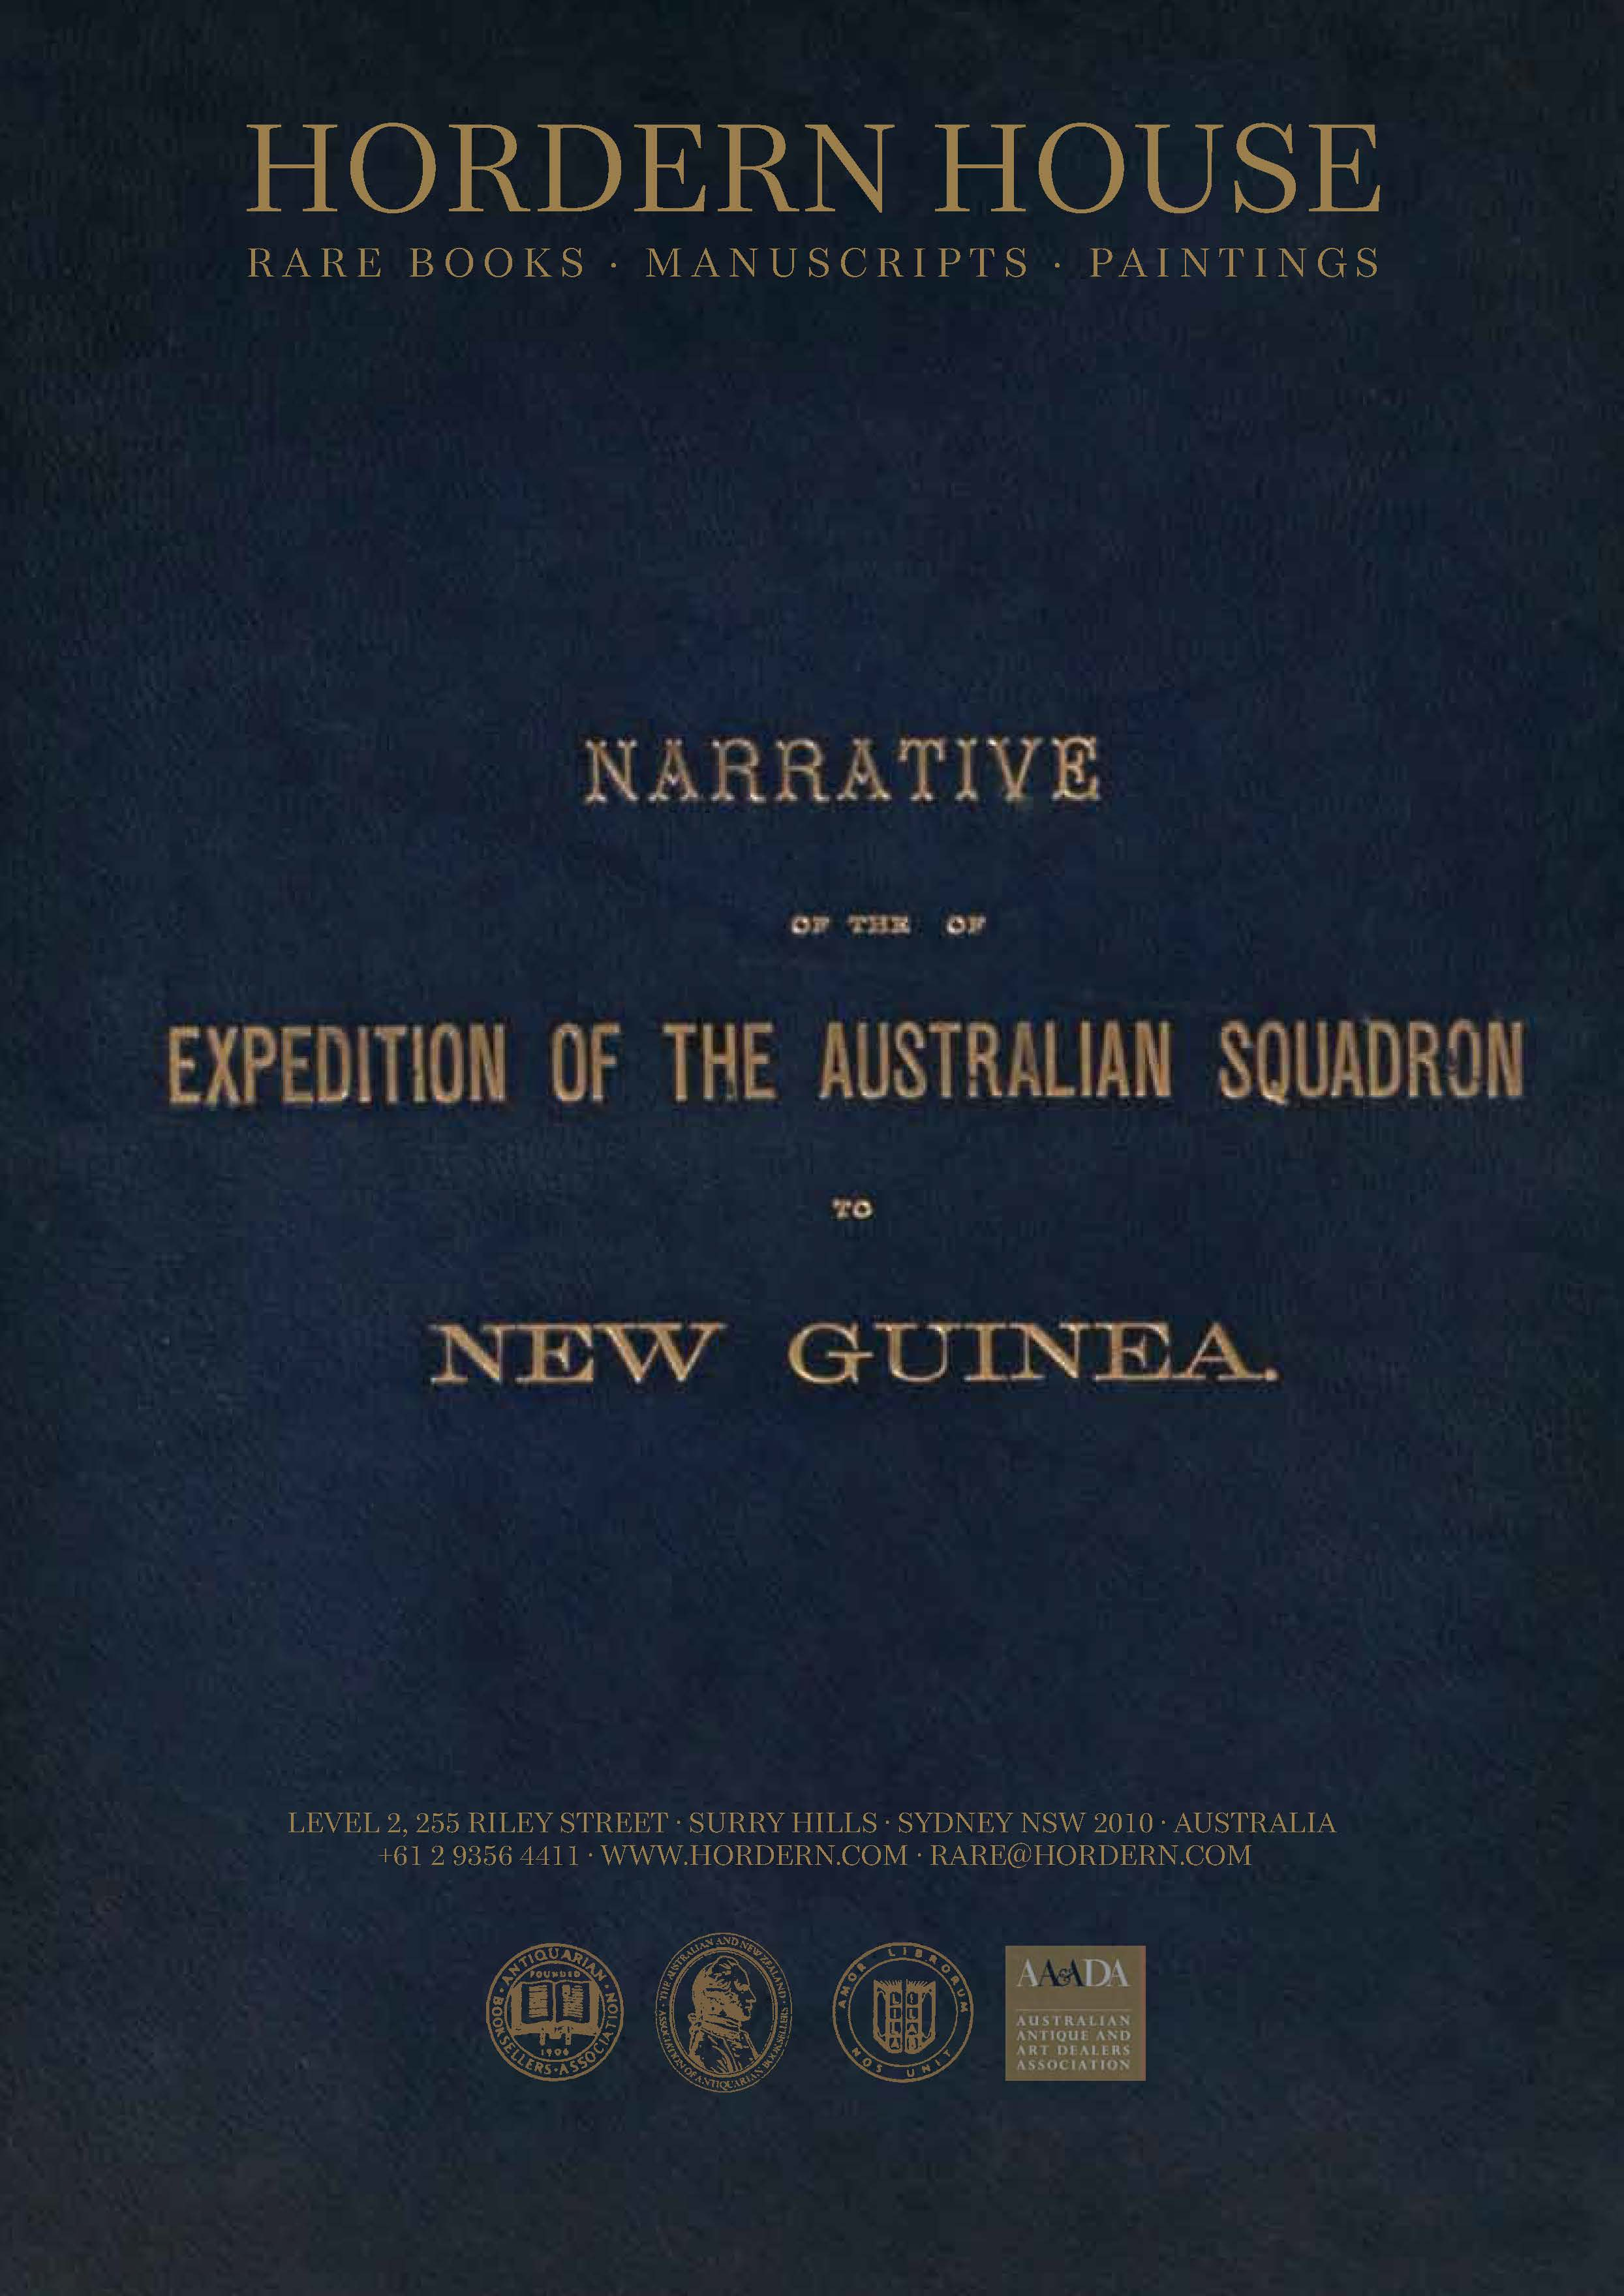 New Guinea Album